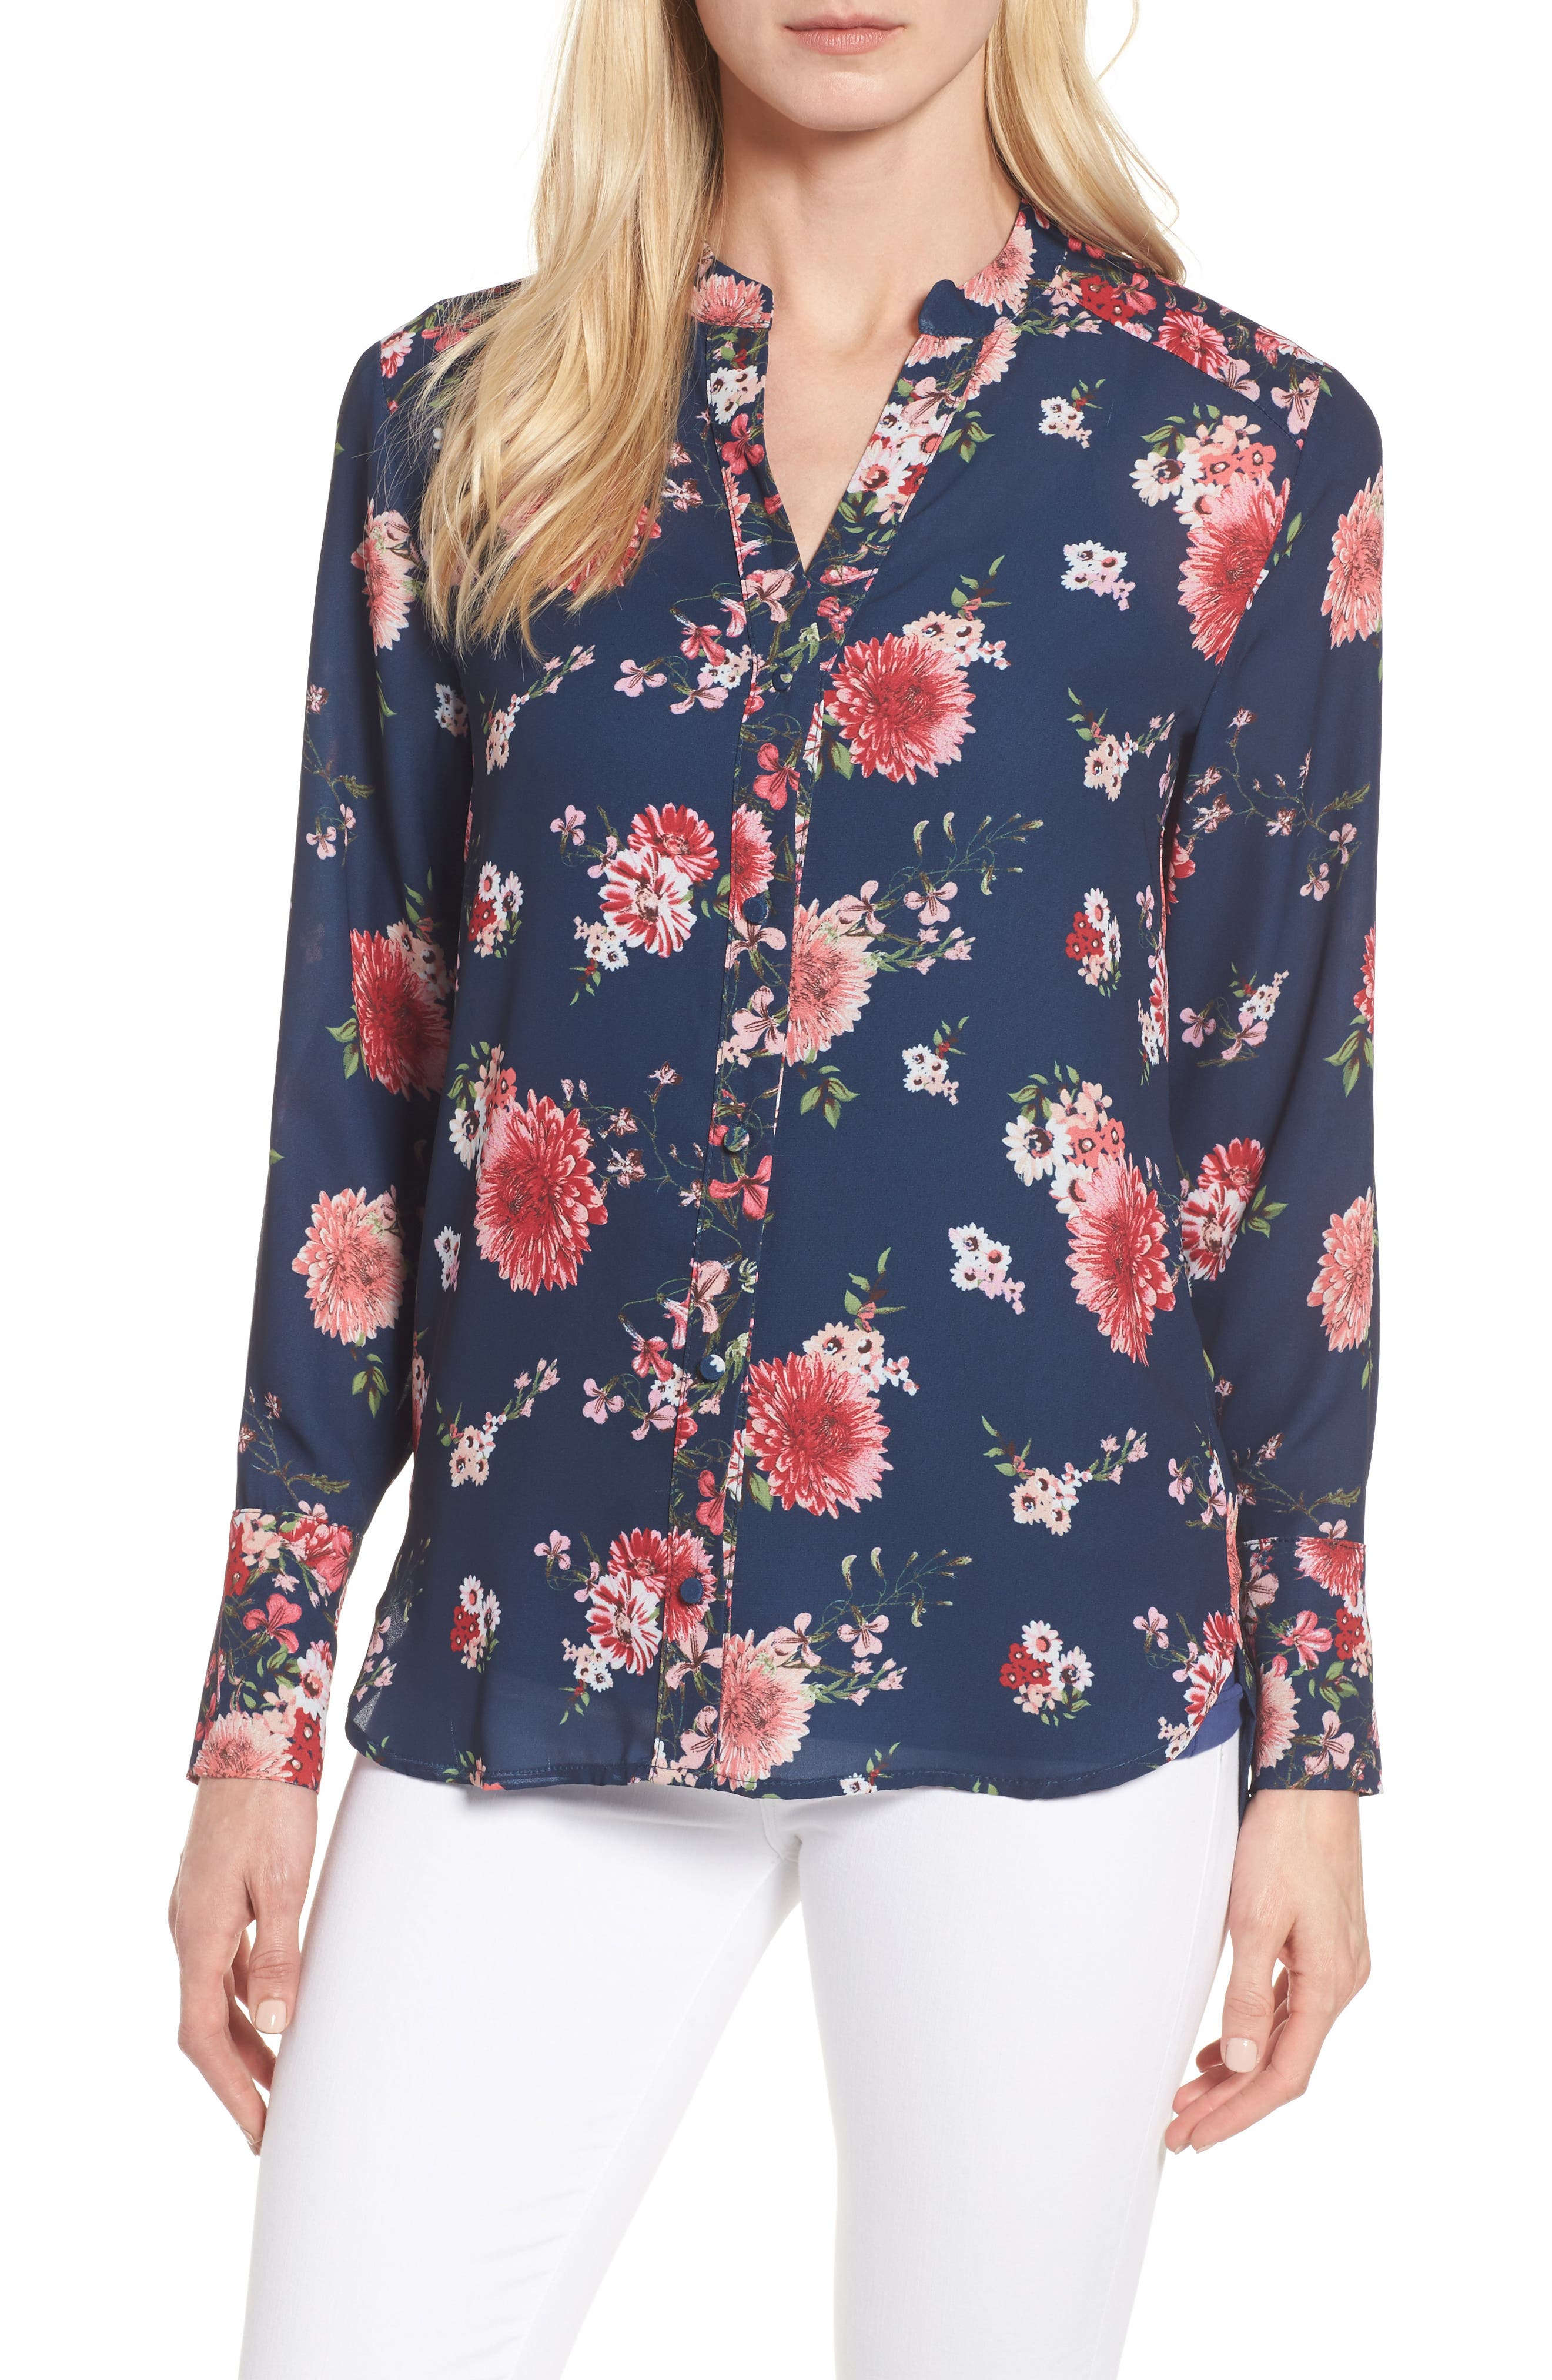 Alternate Image 1 Selected - KUT from the Kloth Liliana Floral Blouse